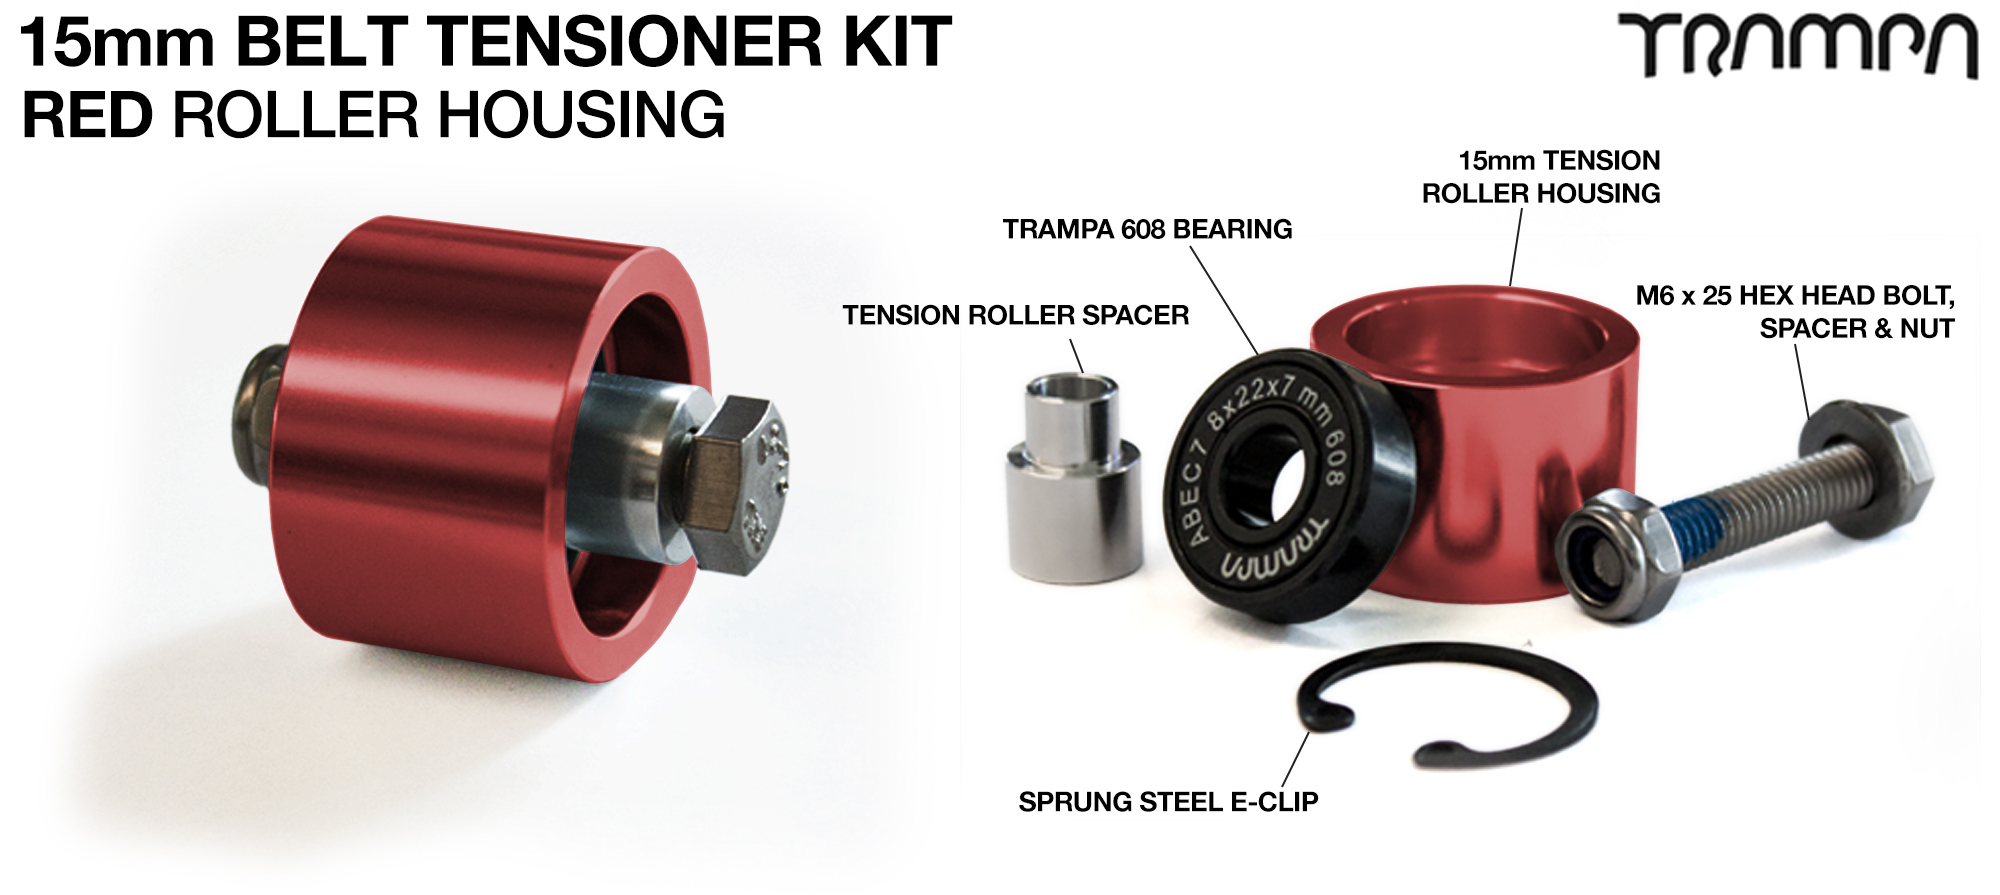 RED 15mm Belt Tensioners